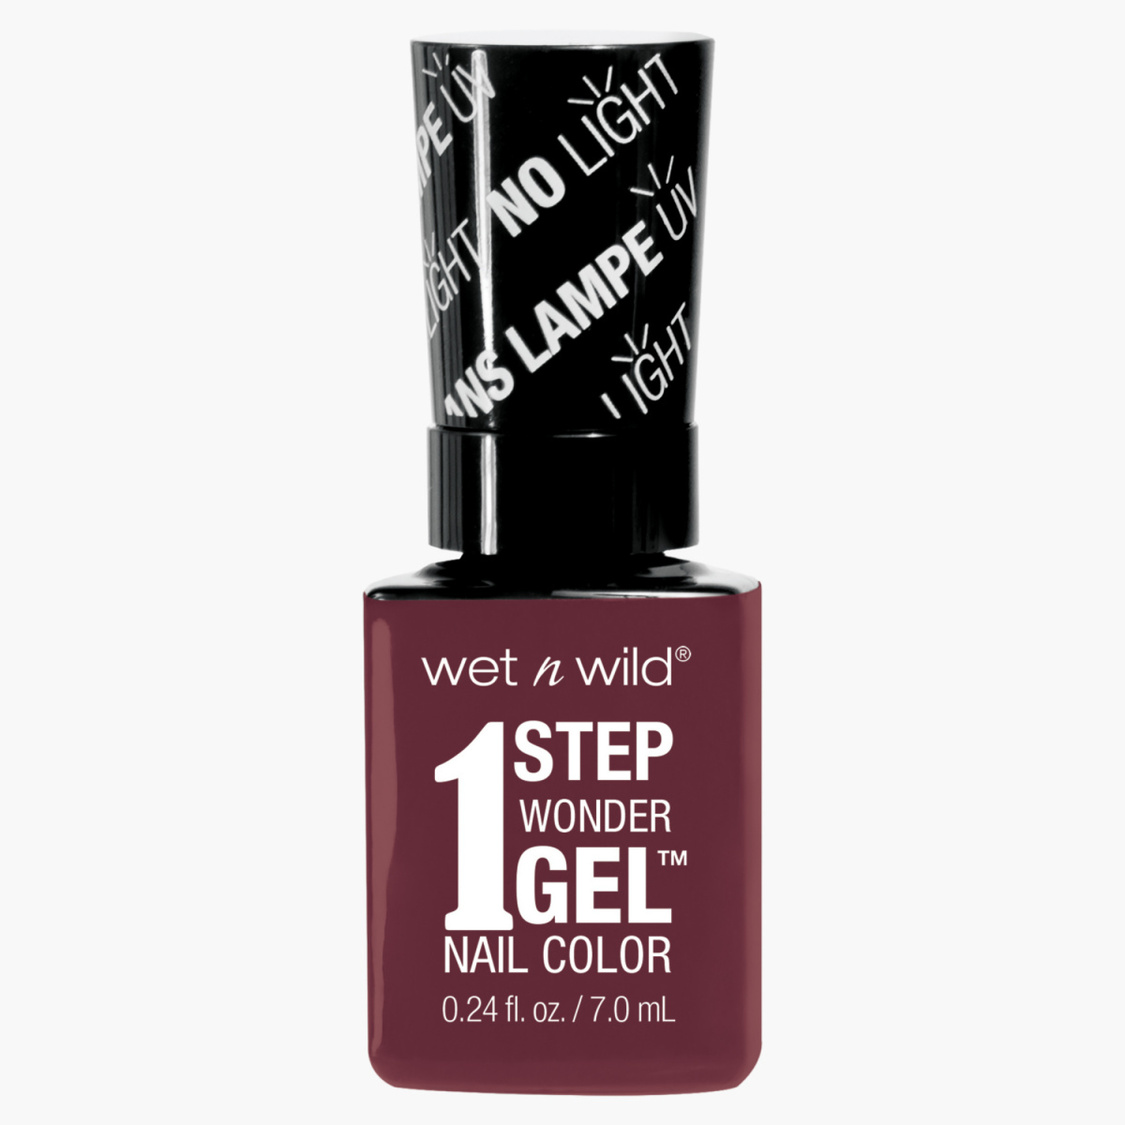 wet n wild 1 Step Wonder Gel Nail Colour